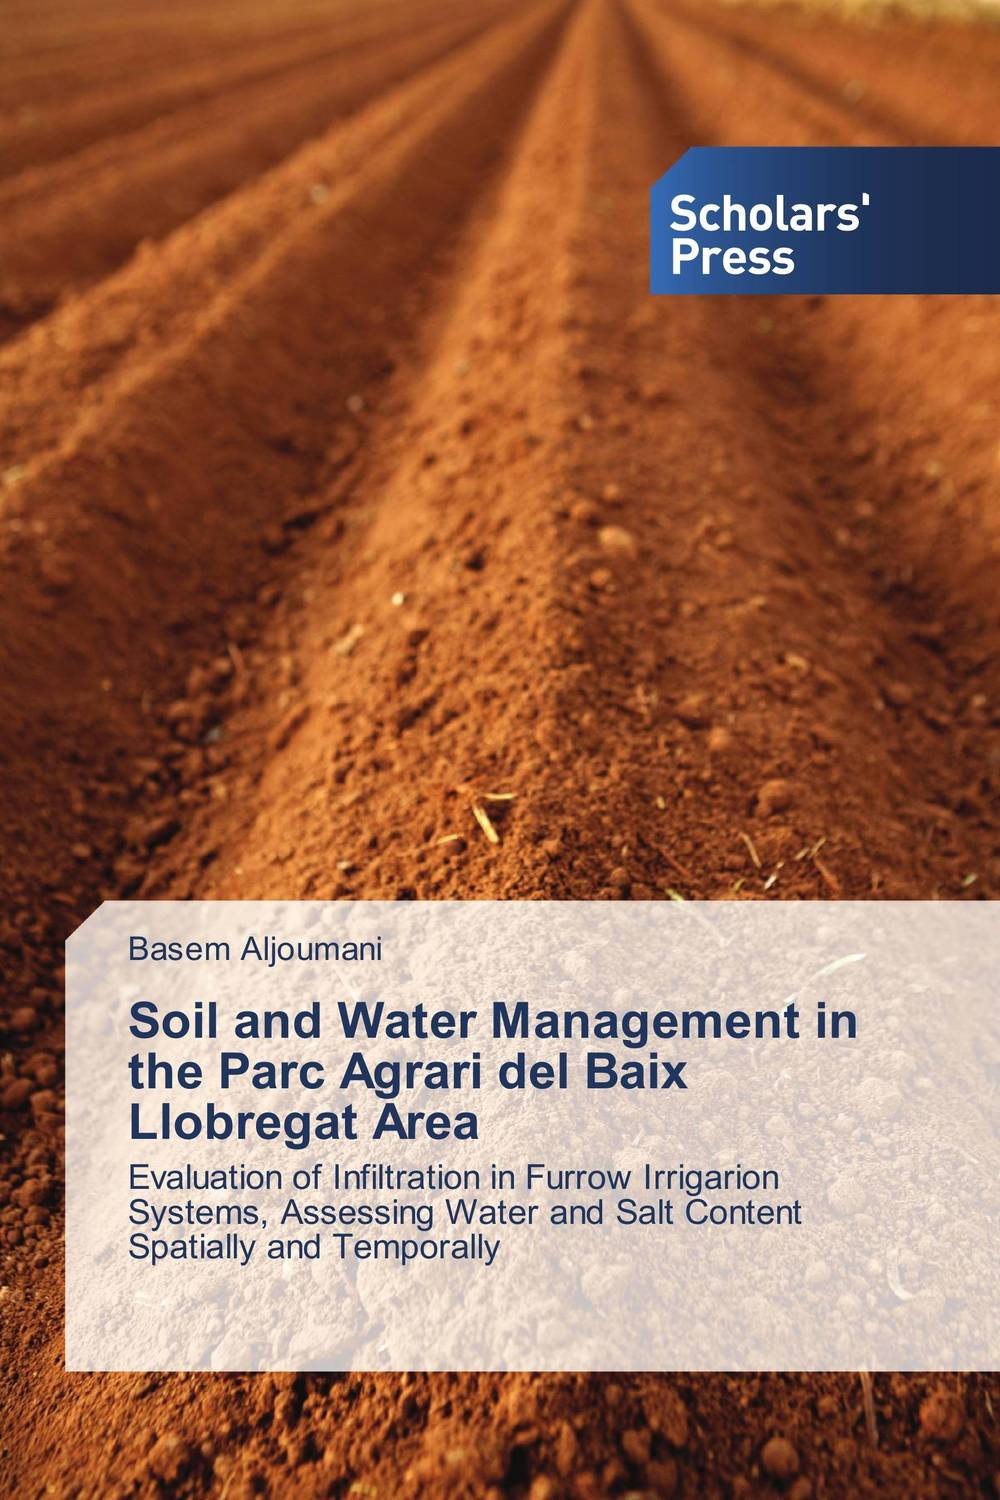 Soil and Water Management in the Parc Agrari del Baix Llobregat Area evaluation of stage wise deficit furrow irrigation